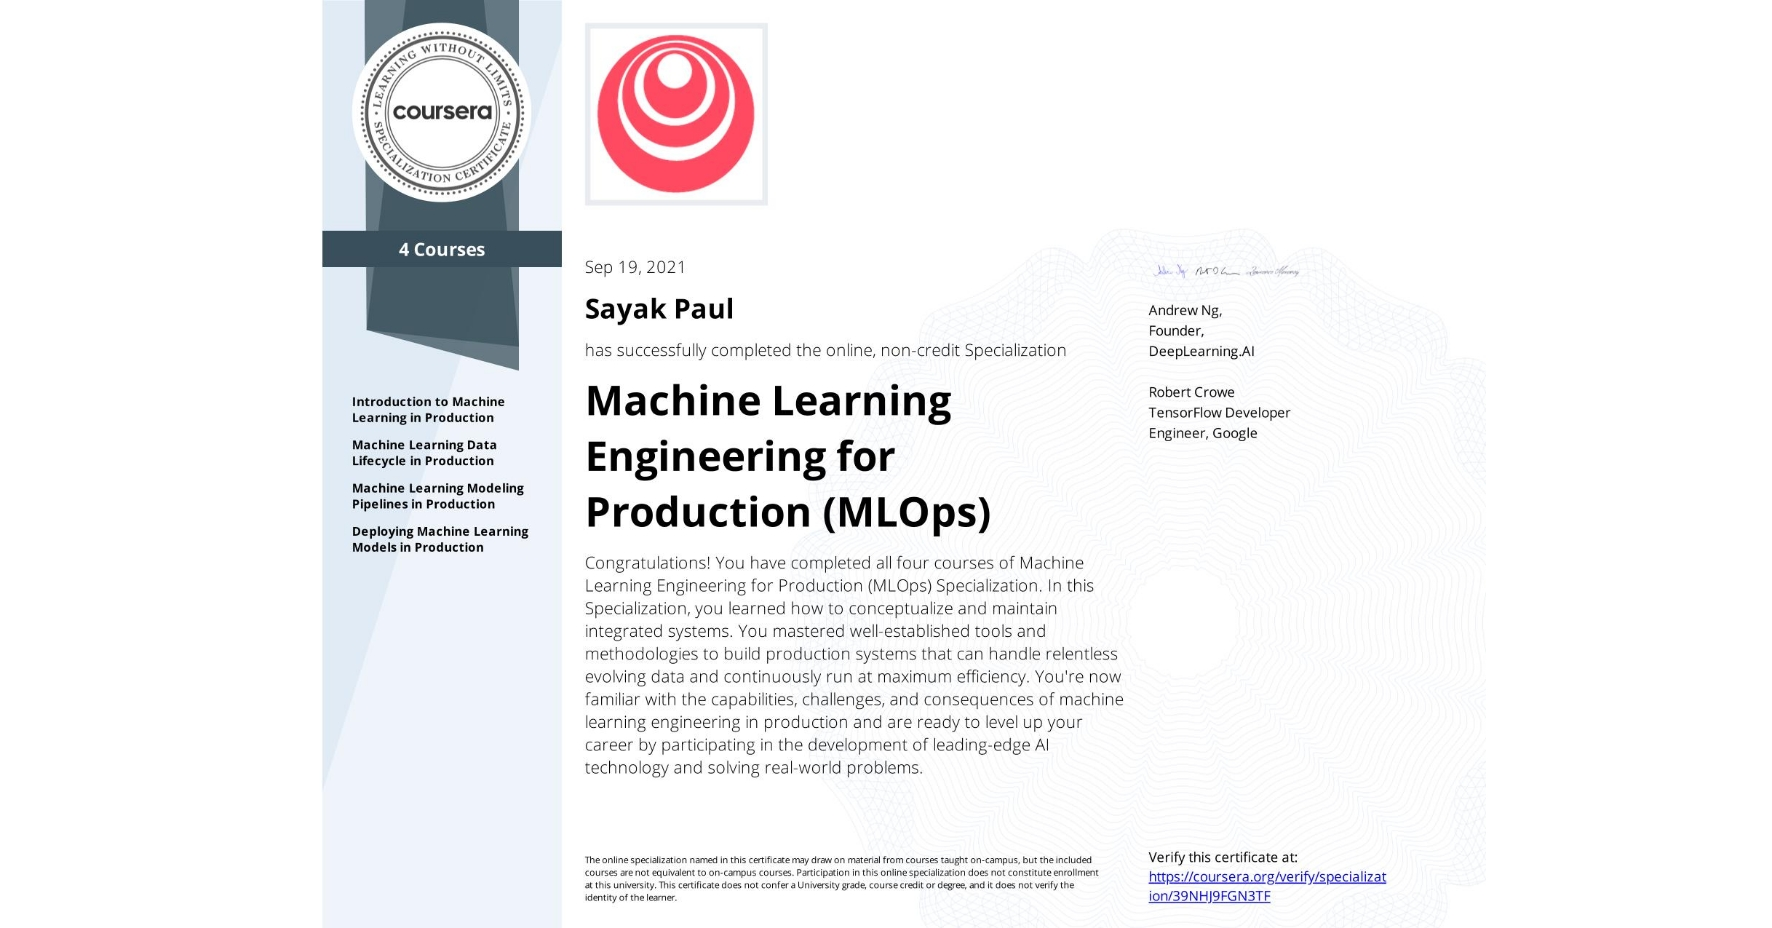 View certificate for Sayak Paul, Machine Learning Engineering for Production (MLOps), offered through Coursera. Congratulations! You have completed all four courses of Machine Learning Engineering for Production (MLOps) Specialization.  In this Specialization, you learned how to conceptualize and maintain integrated systems. You mastered well-established tools and methodologies to build production systems that can handle relentless evolving data and continuously run at maximum efficiency.   You're now familiar with the capabilities, challenges, and consequences of machine learning engineering in production and are ready to level up your career by participating in the development of leading-edge AI technology and solving real-world problems.